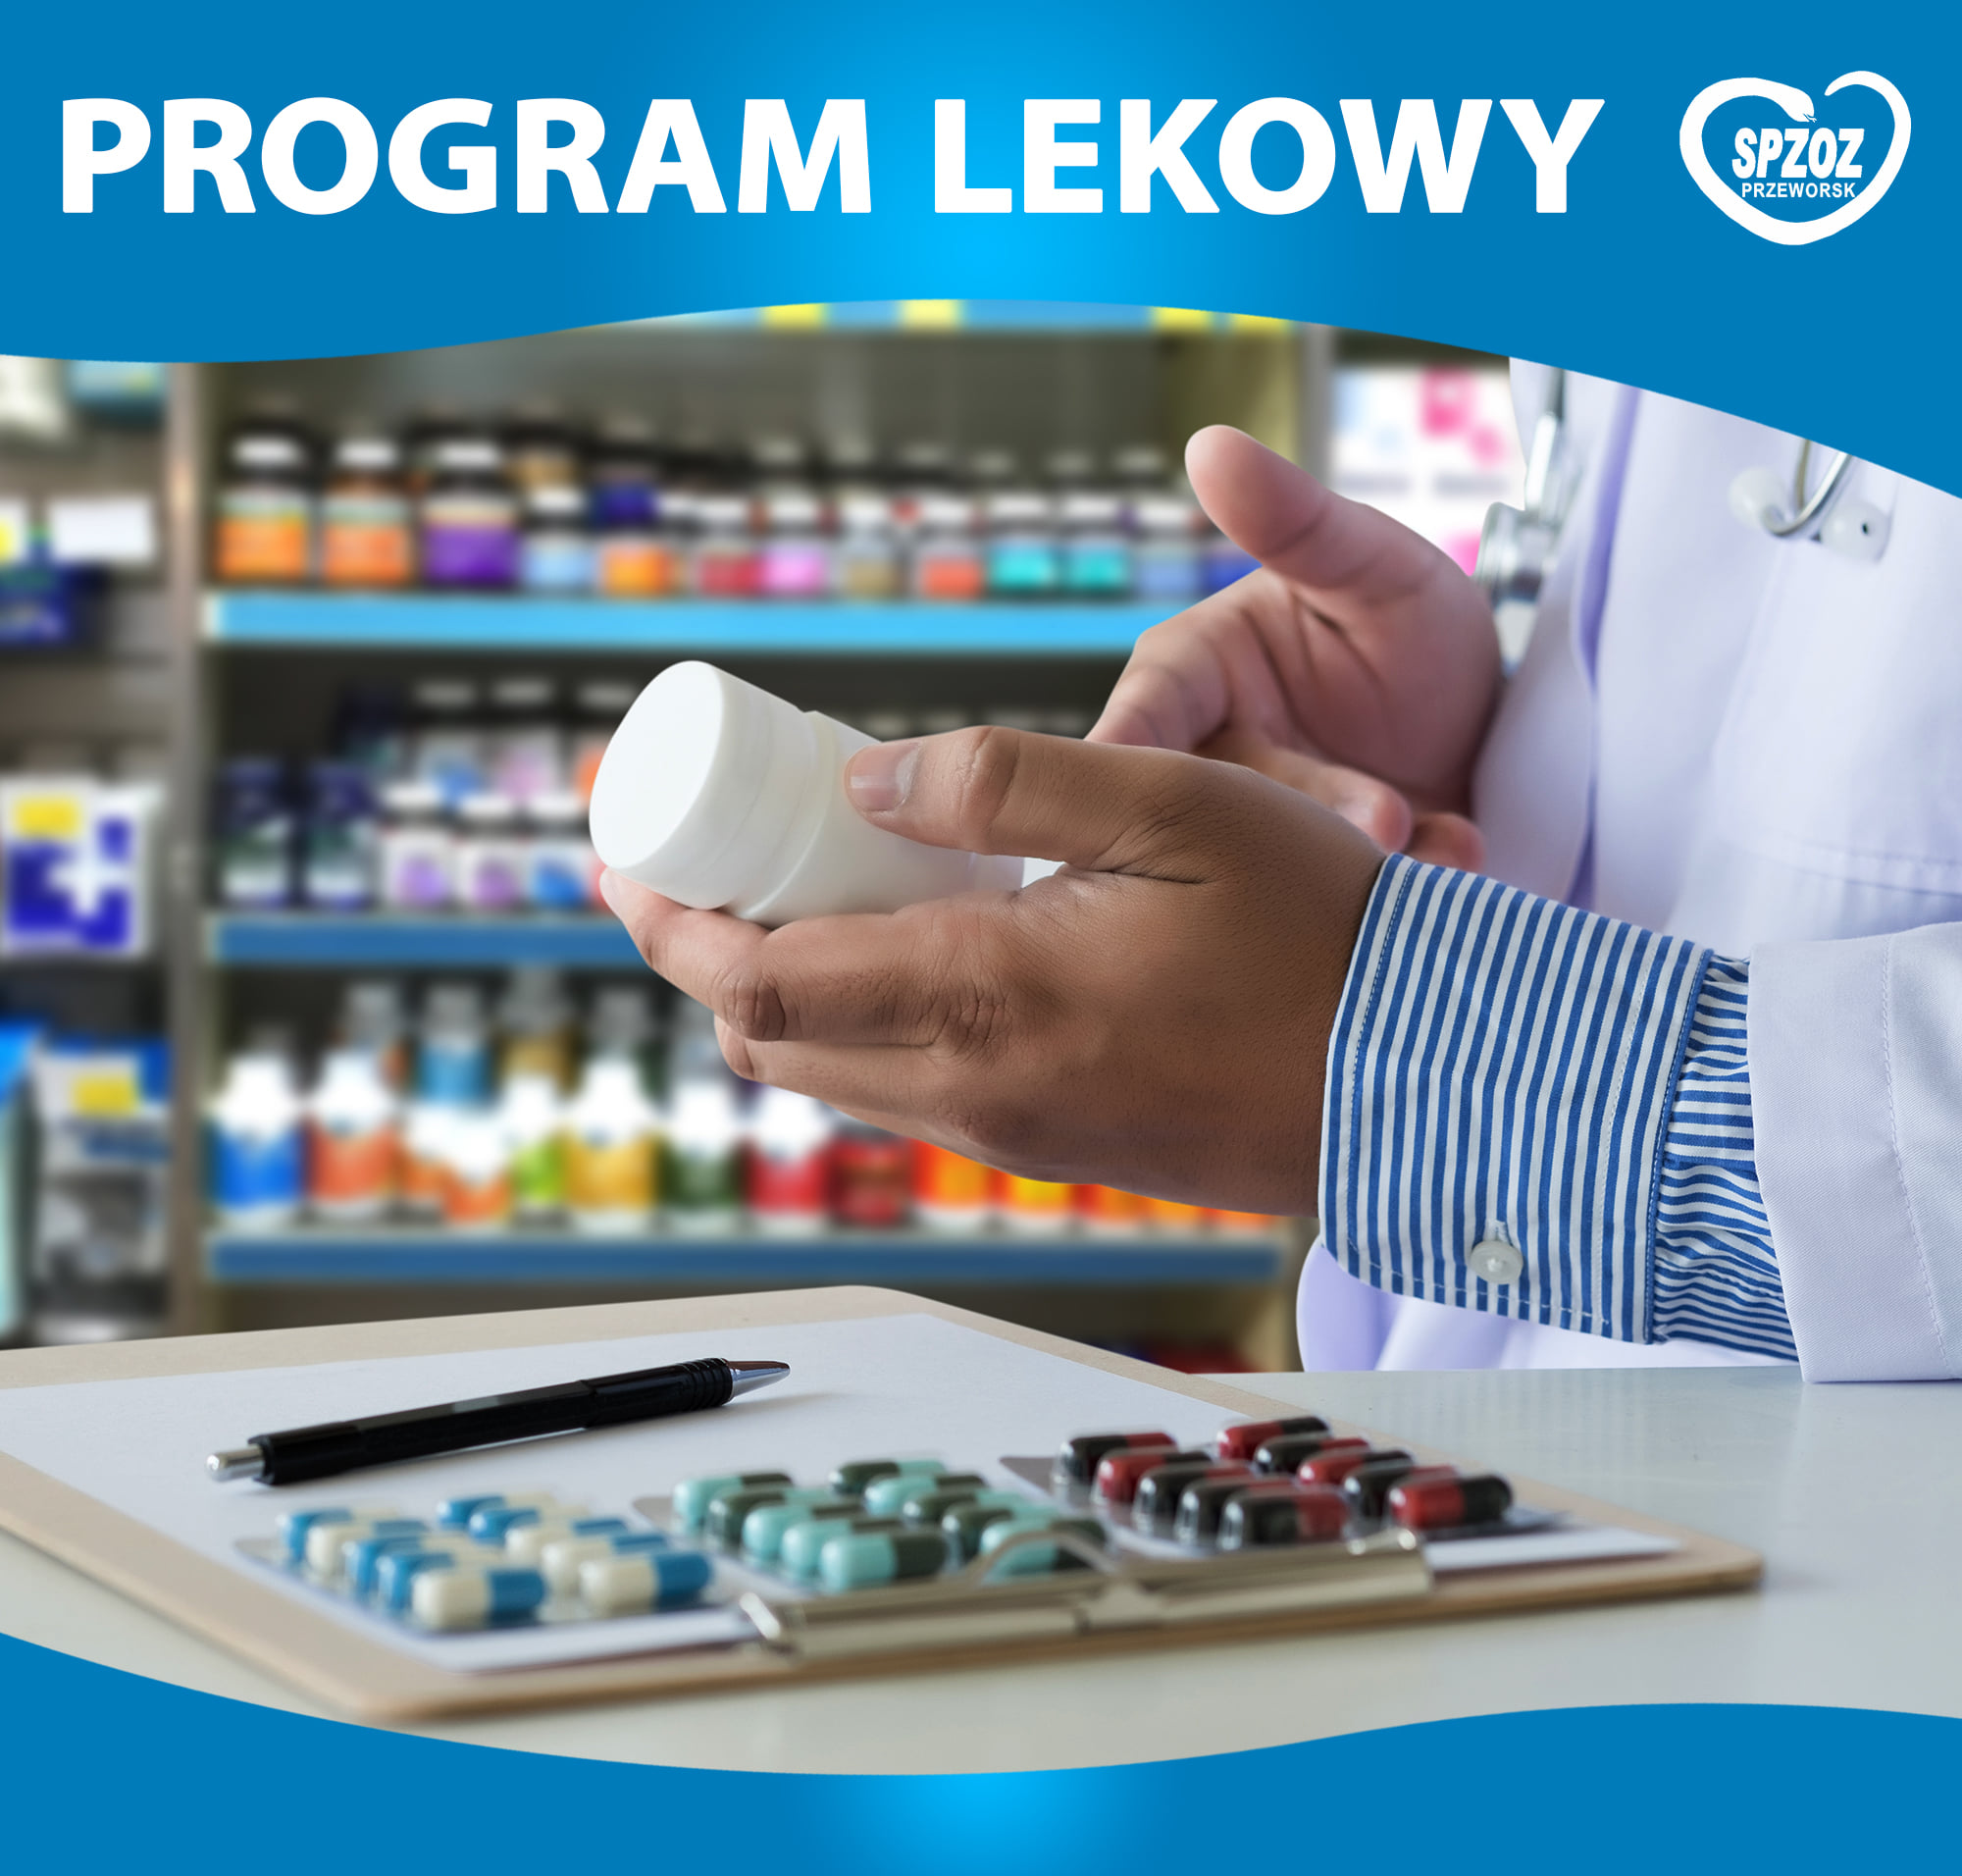 Program Lekowy